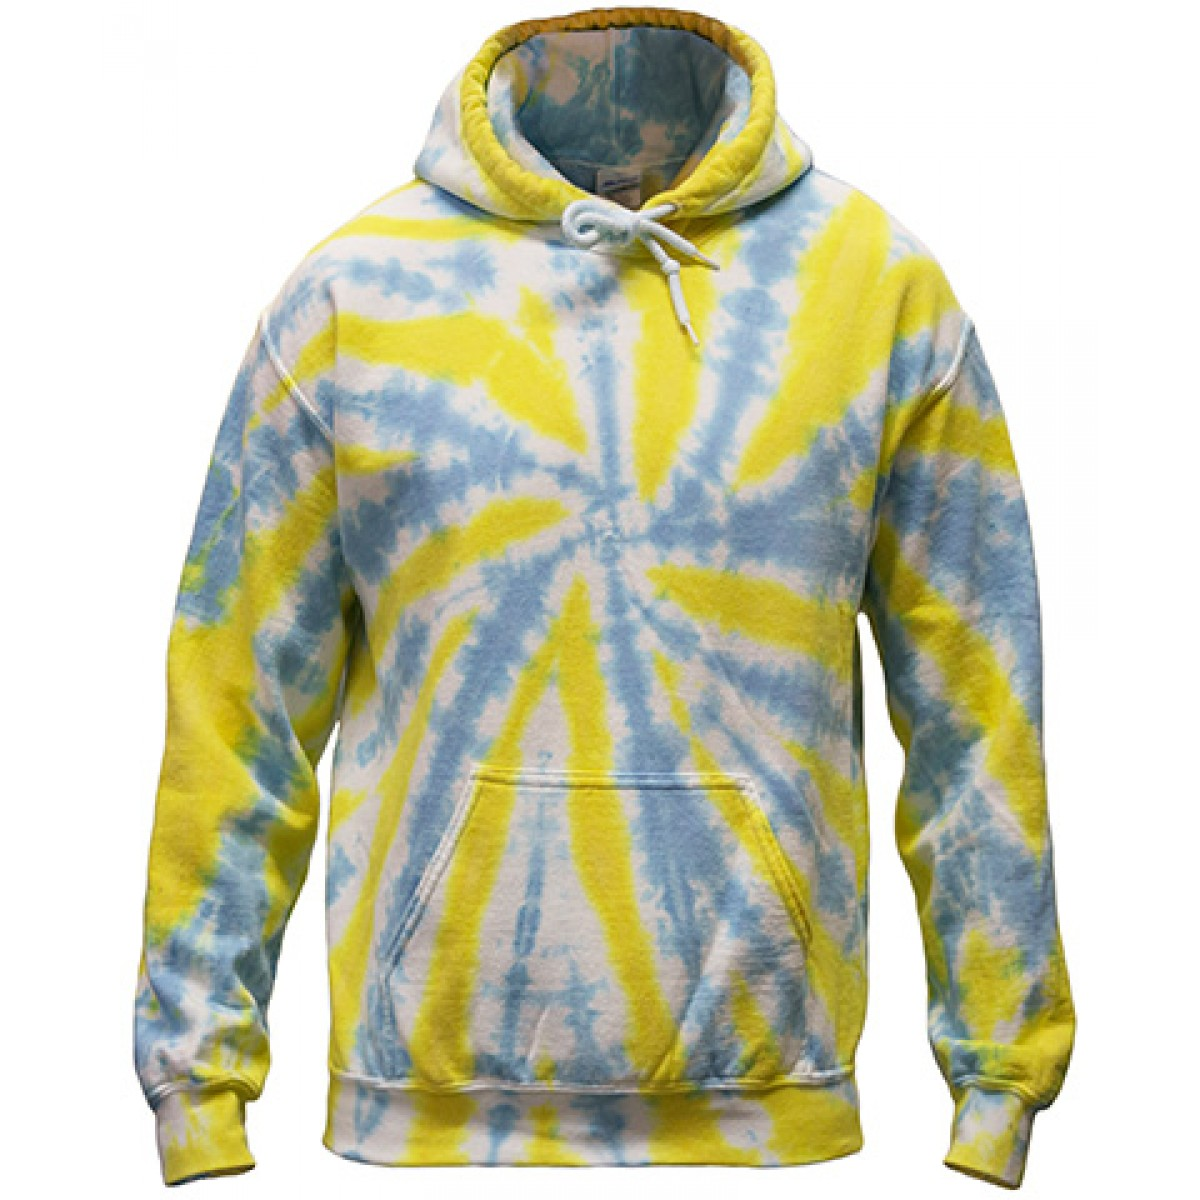 Tie-Dye Pullover Hooded Sweatshirt-Blue/Yellow-YL